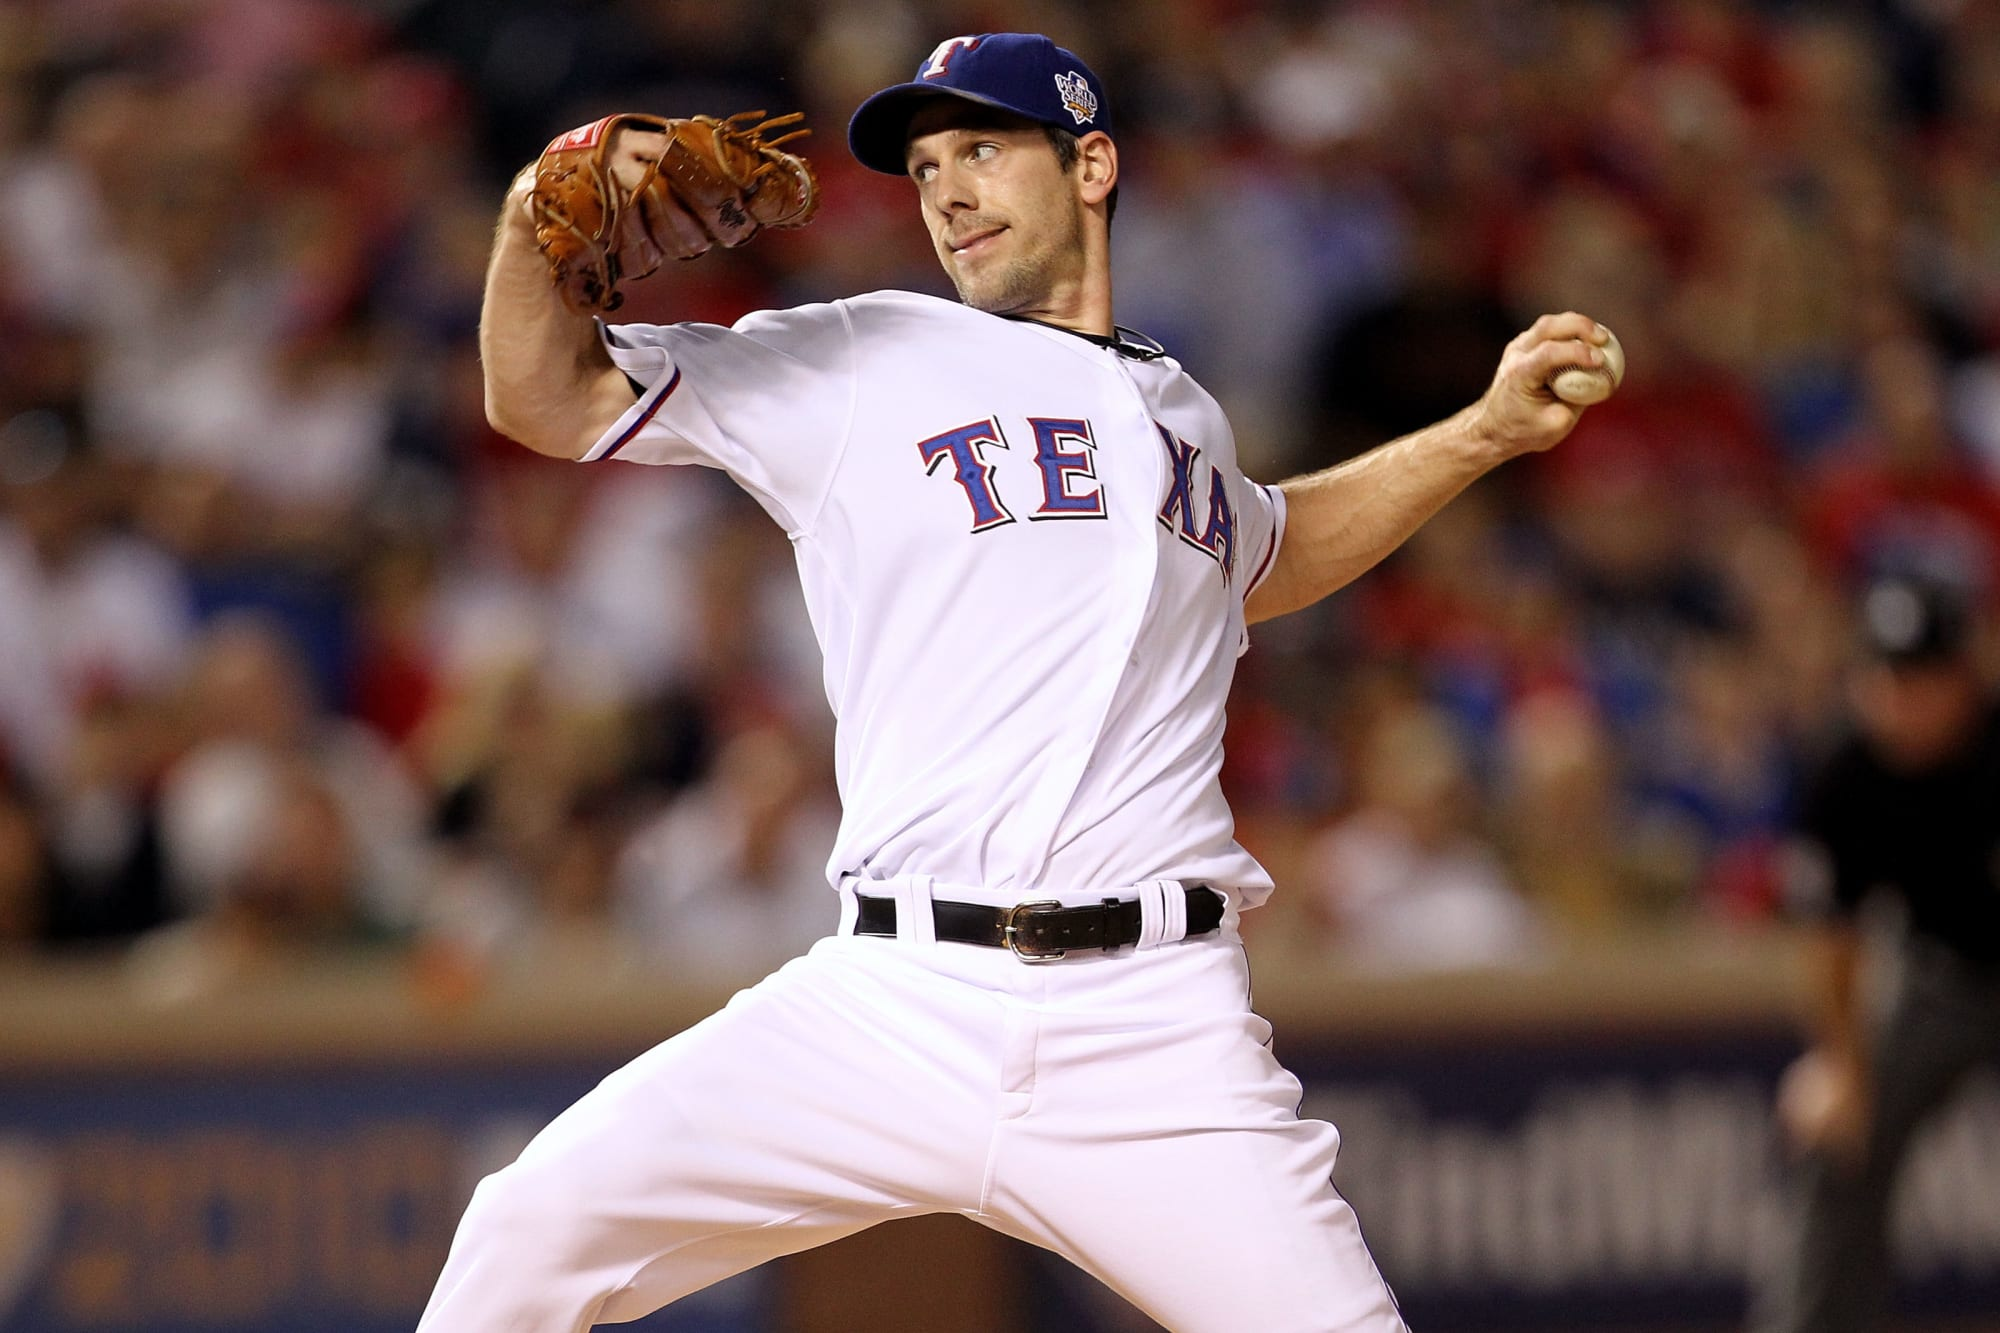 Yankees: Revisiting the Cliff Lee Non-Trade That Sank the 2010 Season